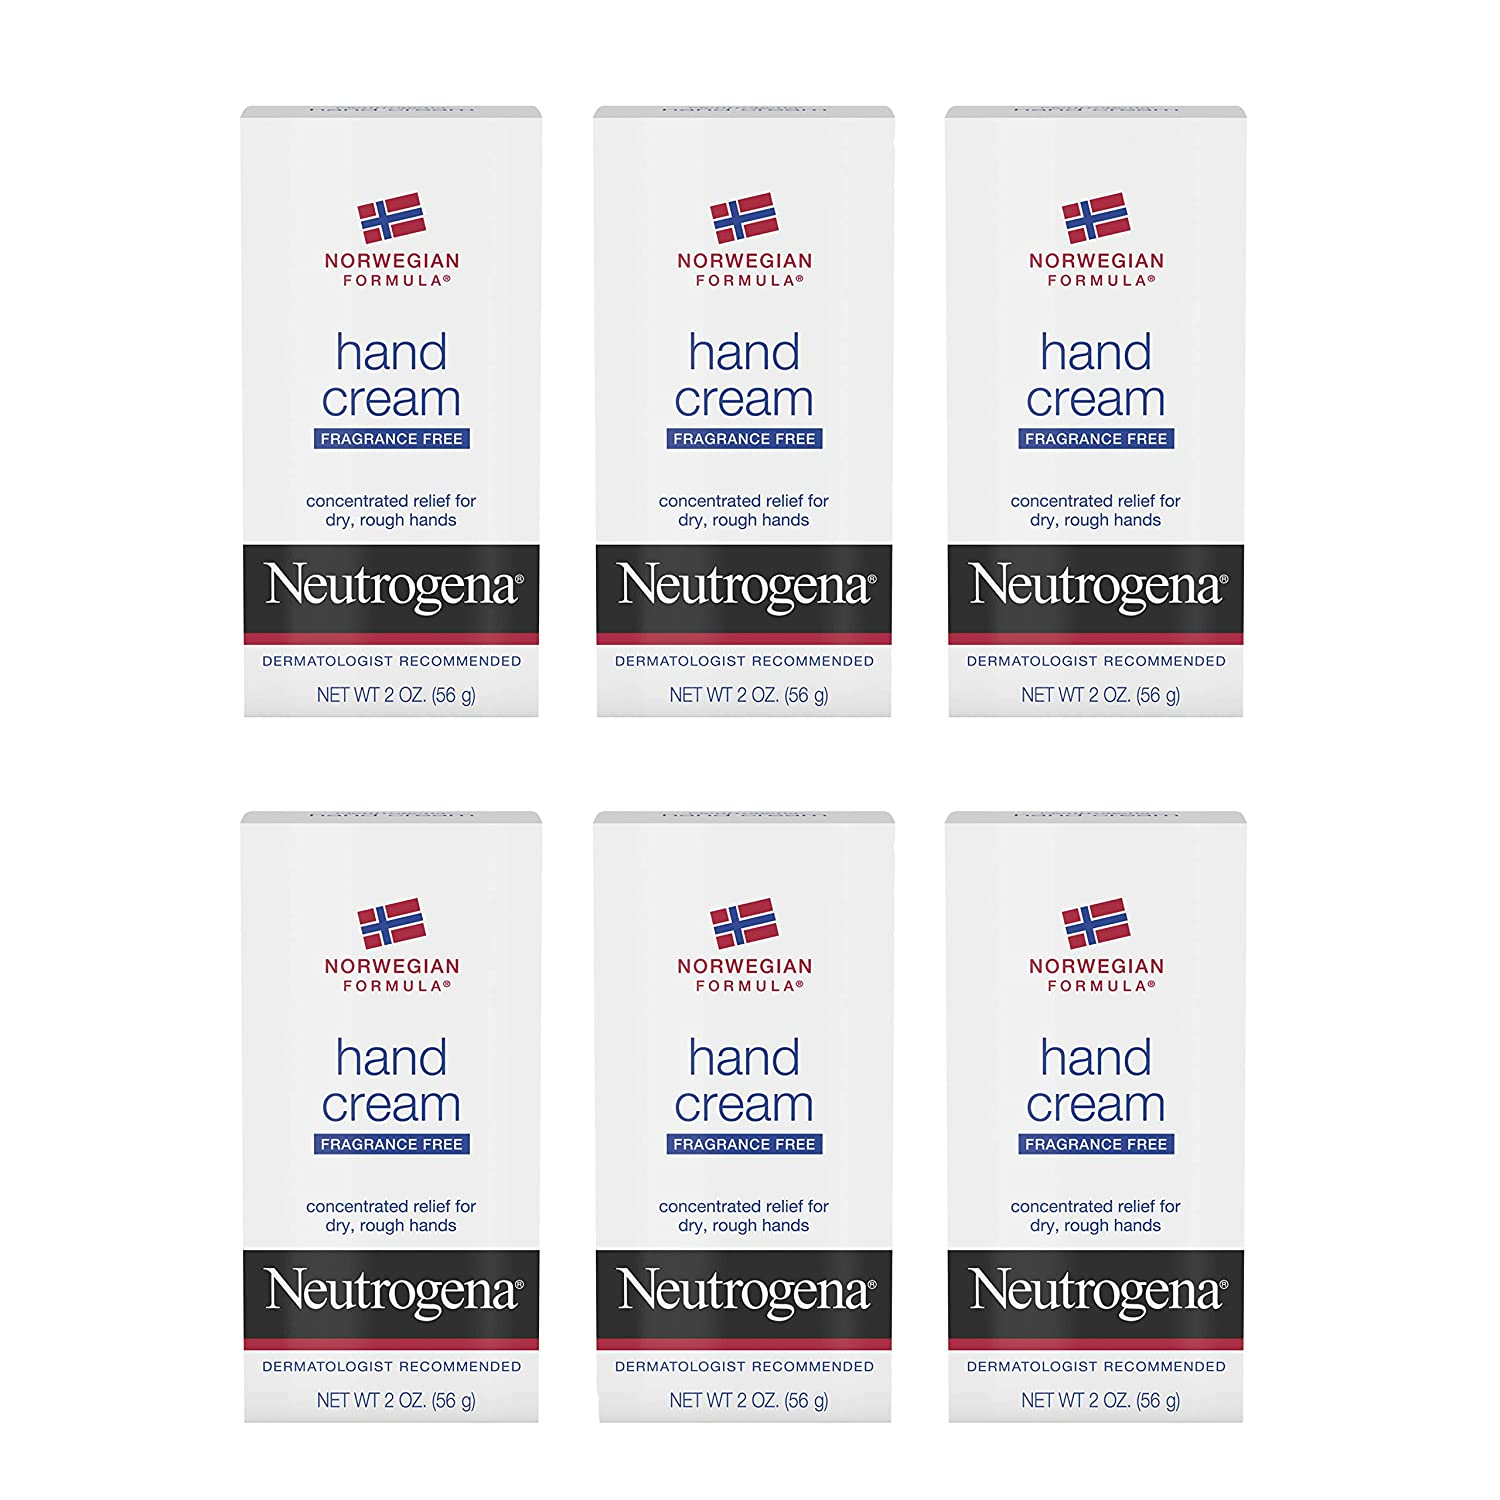 Neutrogena Norwegian Formula Moisturizing Hand Cream Formulated with Glycerin for Dry, Rough Hands, Fragrance-Free Intensive Hand Lotion, 2 oz, Pack of 6